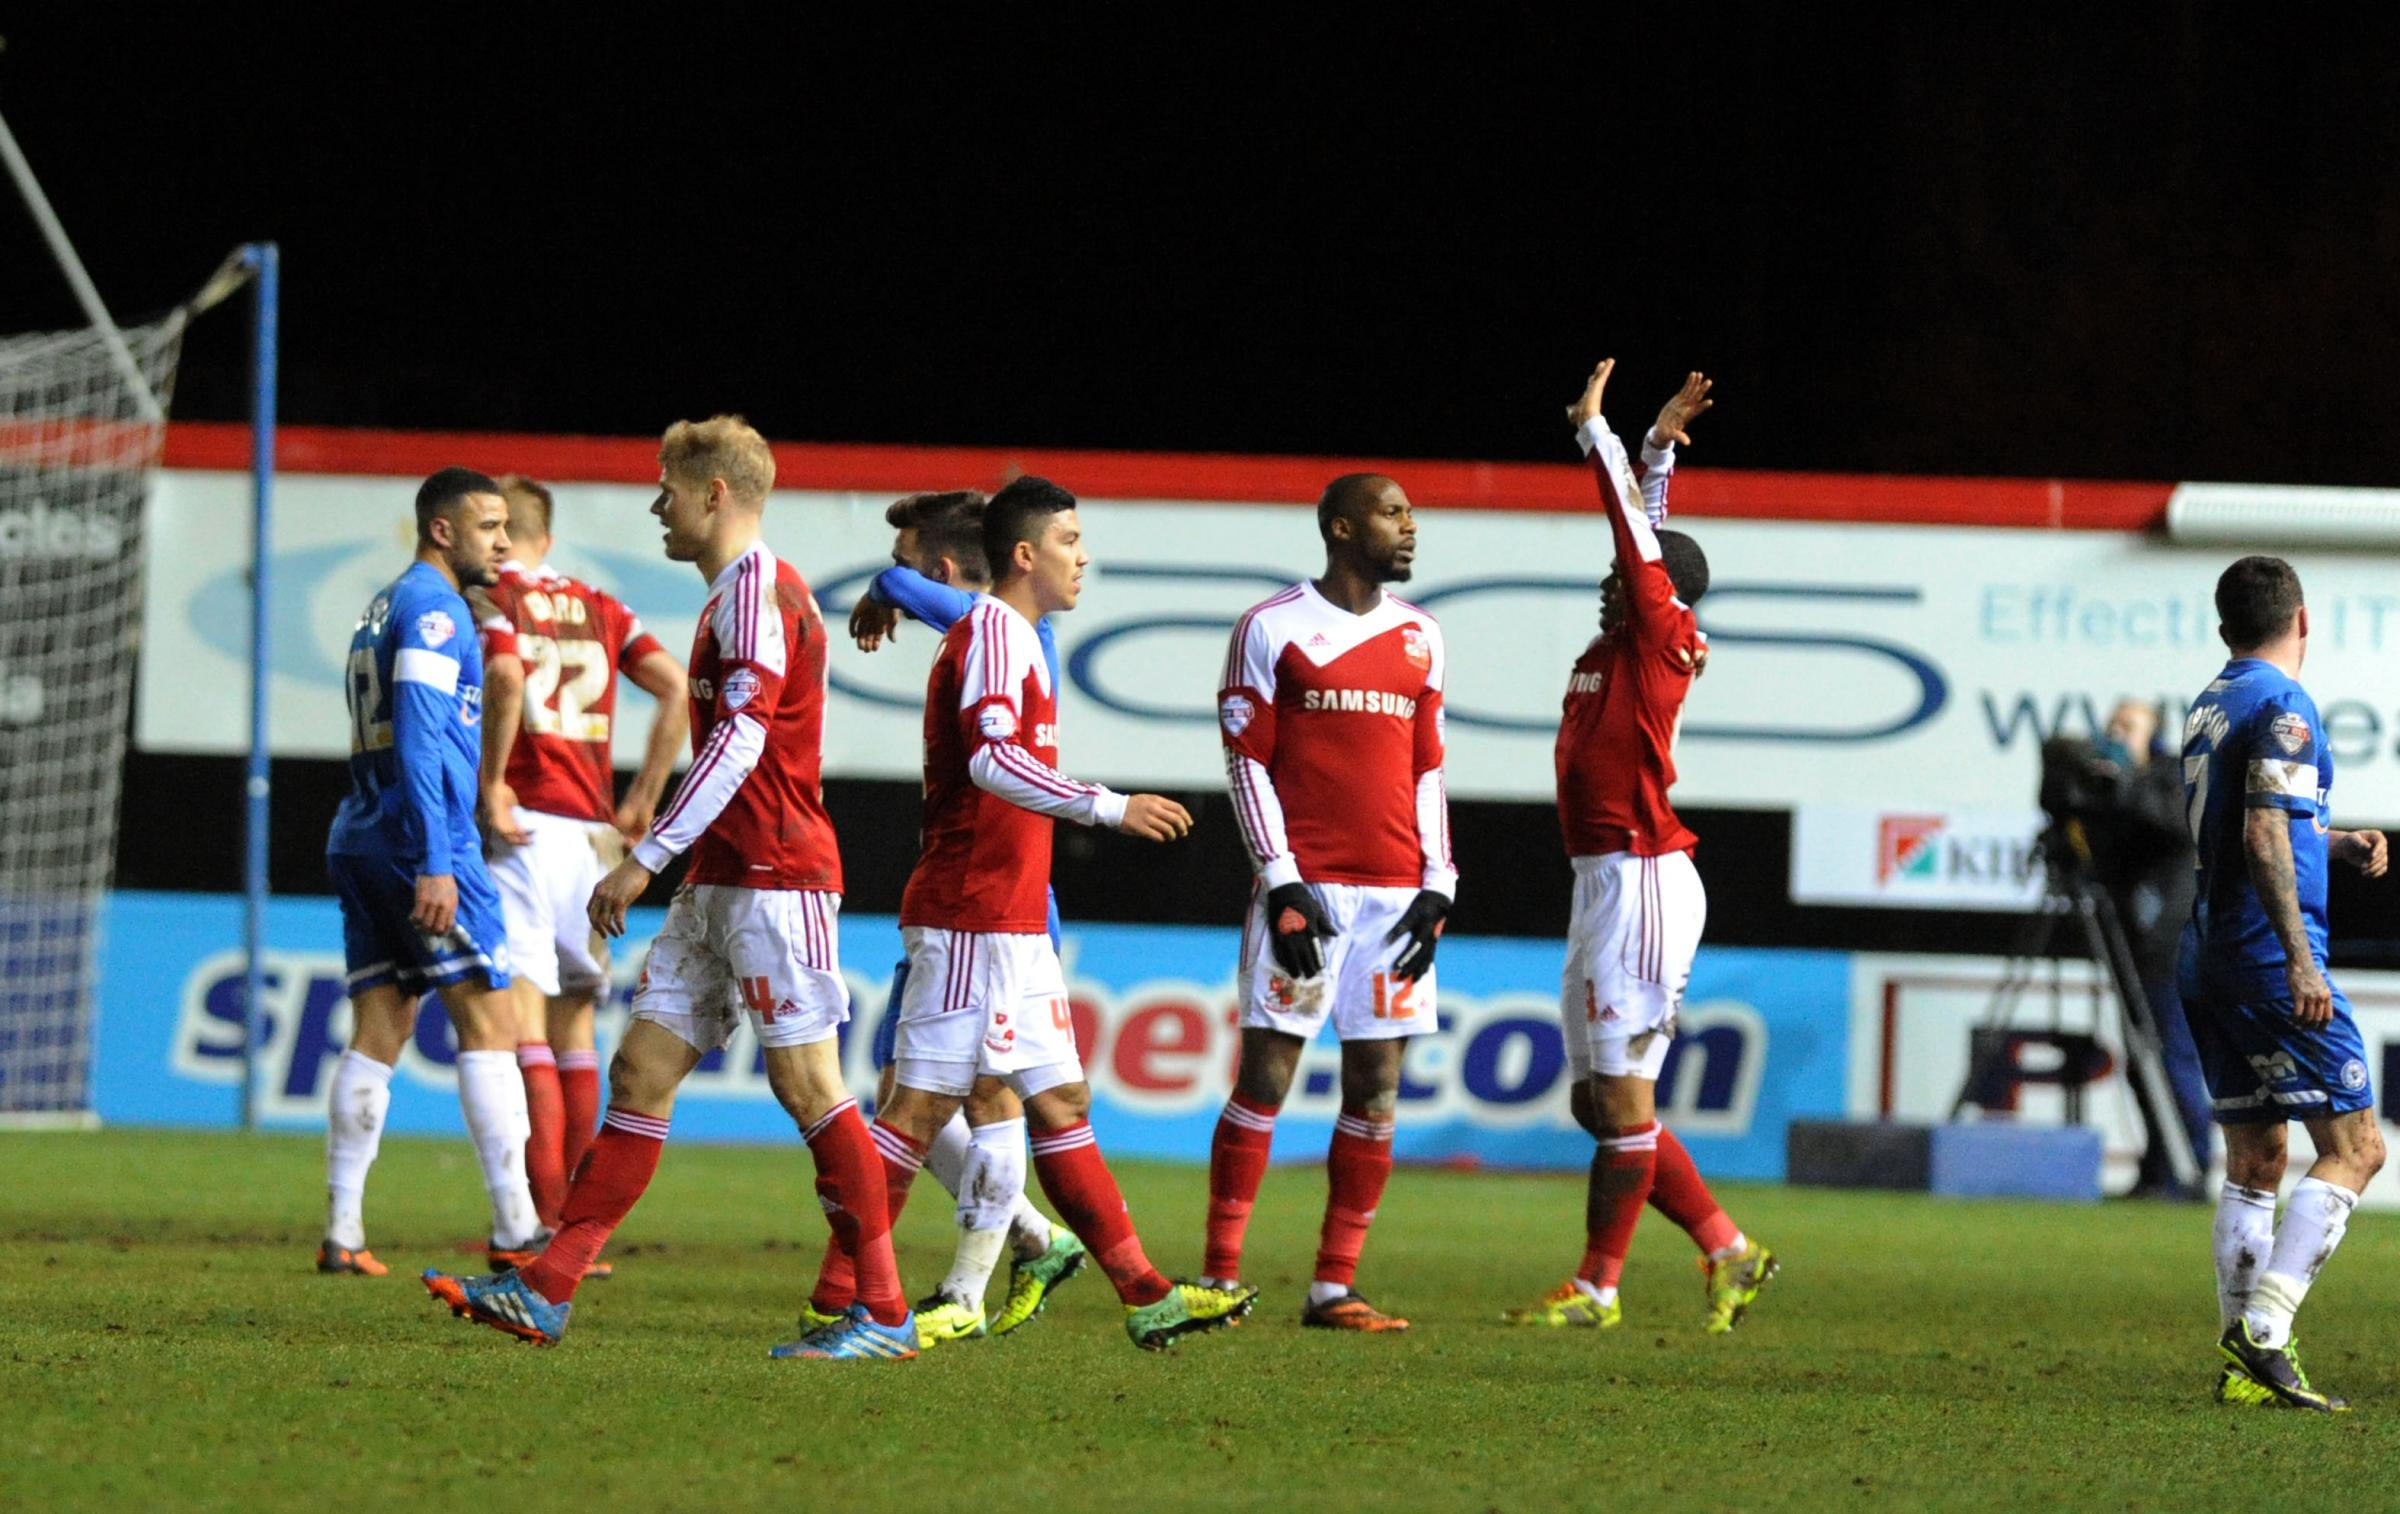 PETERBOROUGH 2 SWINDON TOWN 2: Robins grab crucial draw in JPT clash